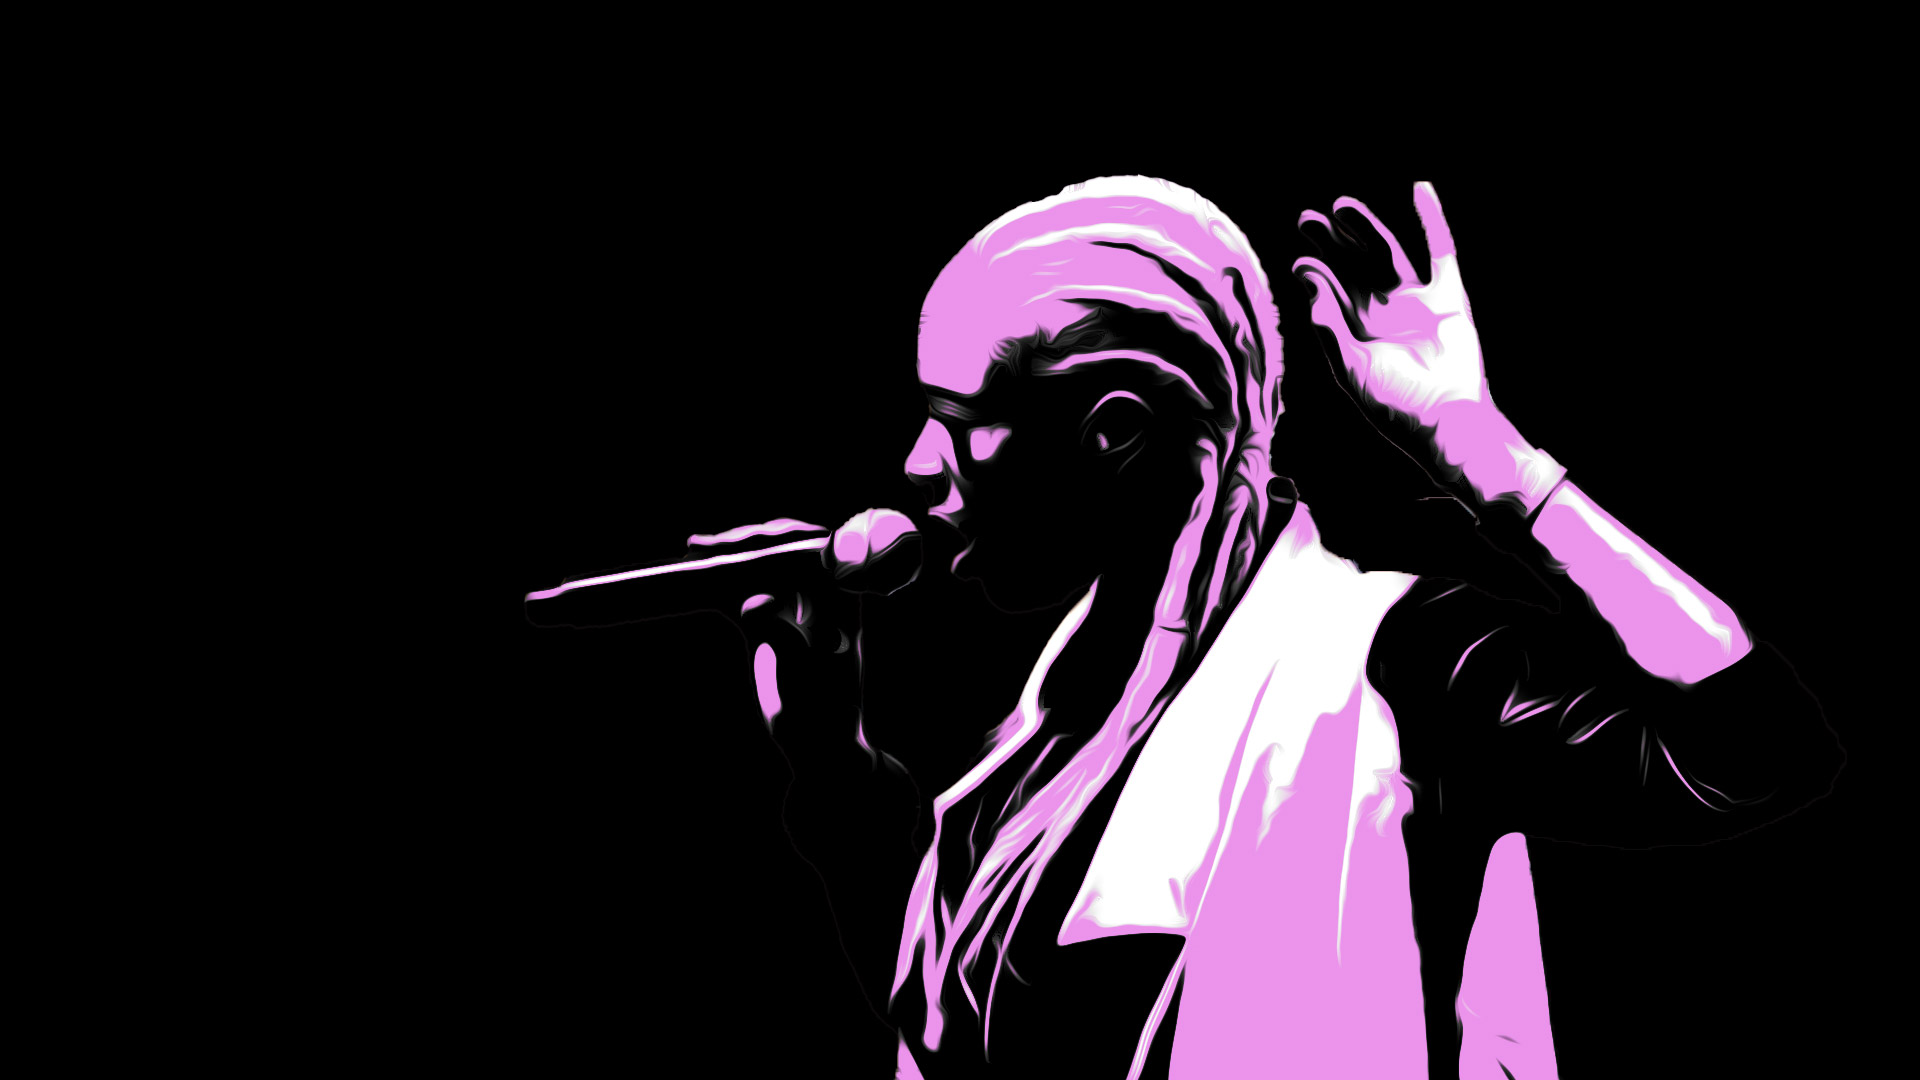 An illustrated image of Soulful Emma Louise (S.E.L) singing. Black background with pink and white highlights.